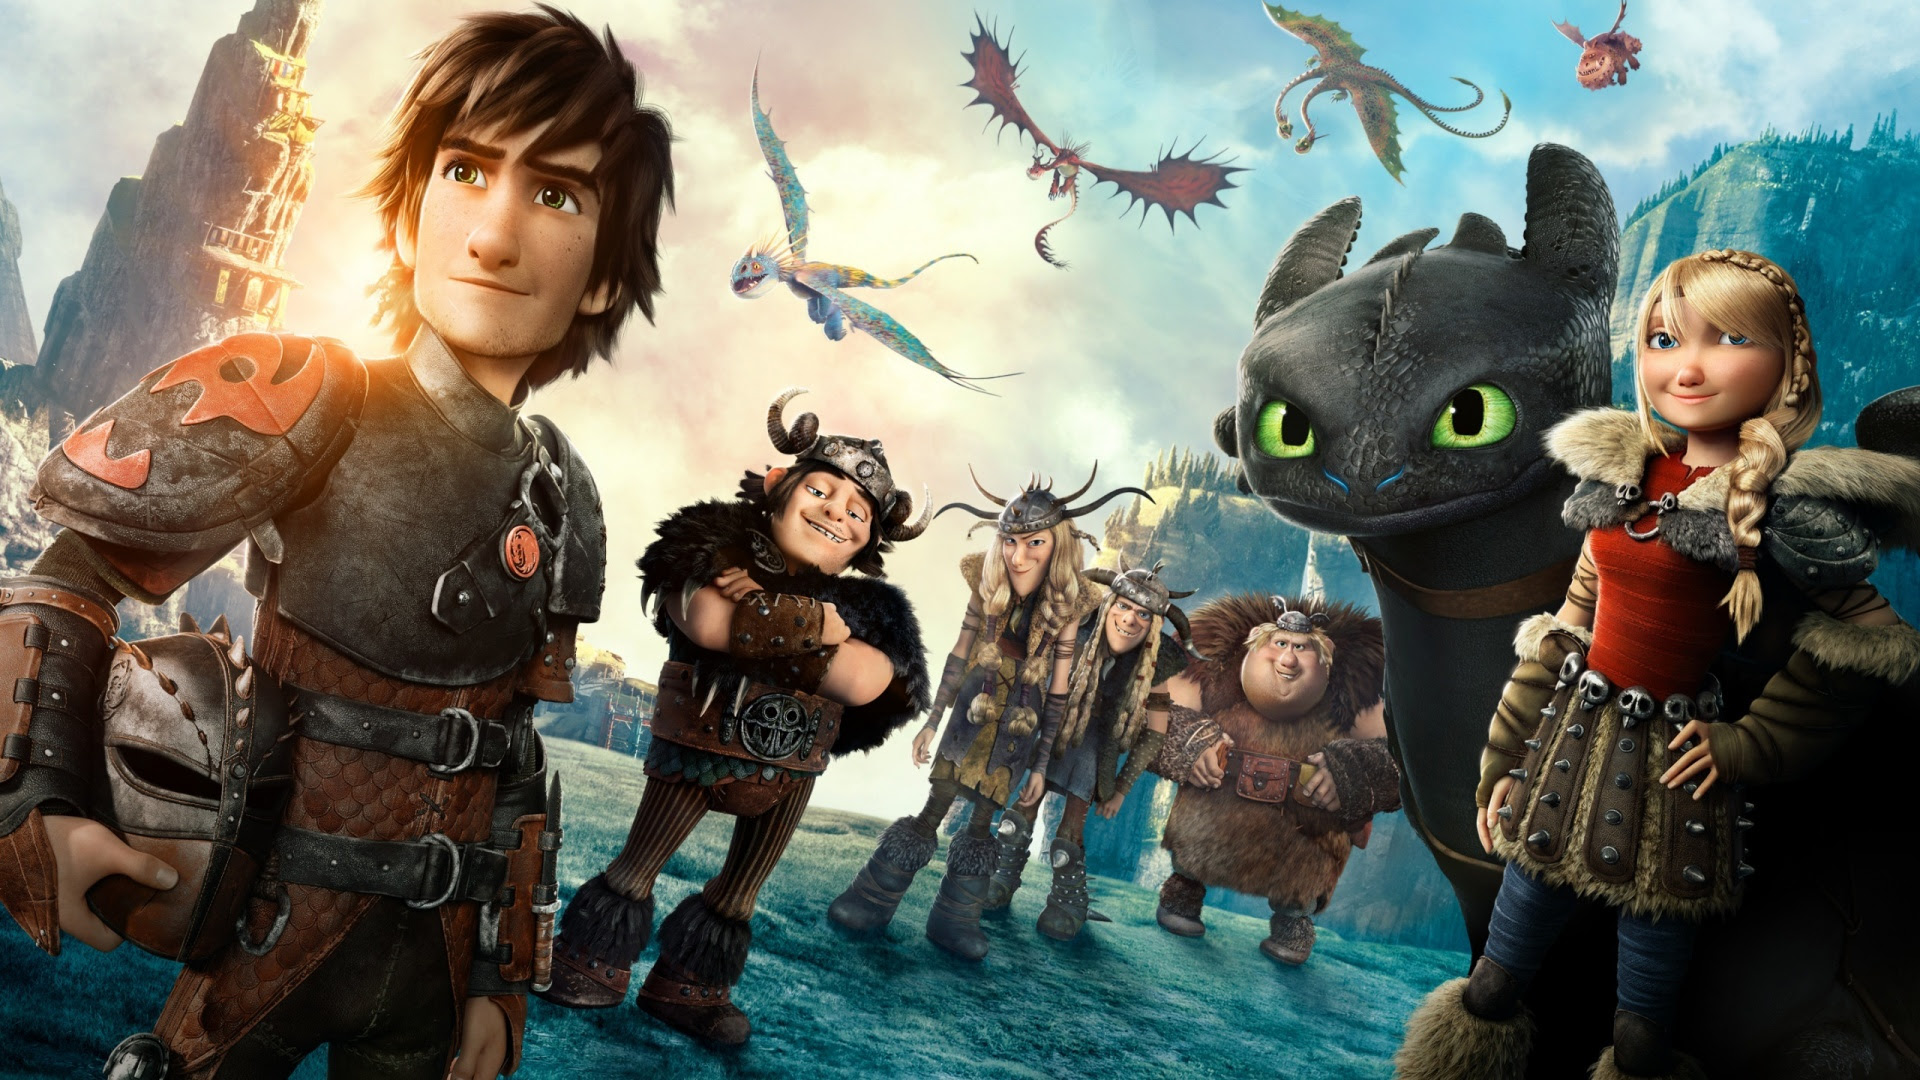 How To Train Your Dragon 2 Movie Wallpapers In Jpg Format For Free